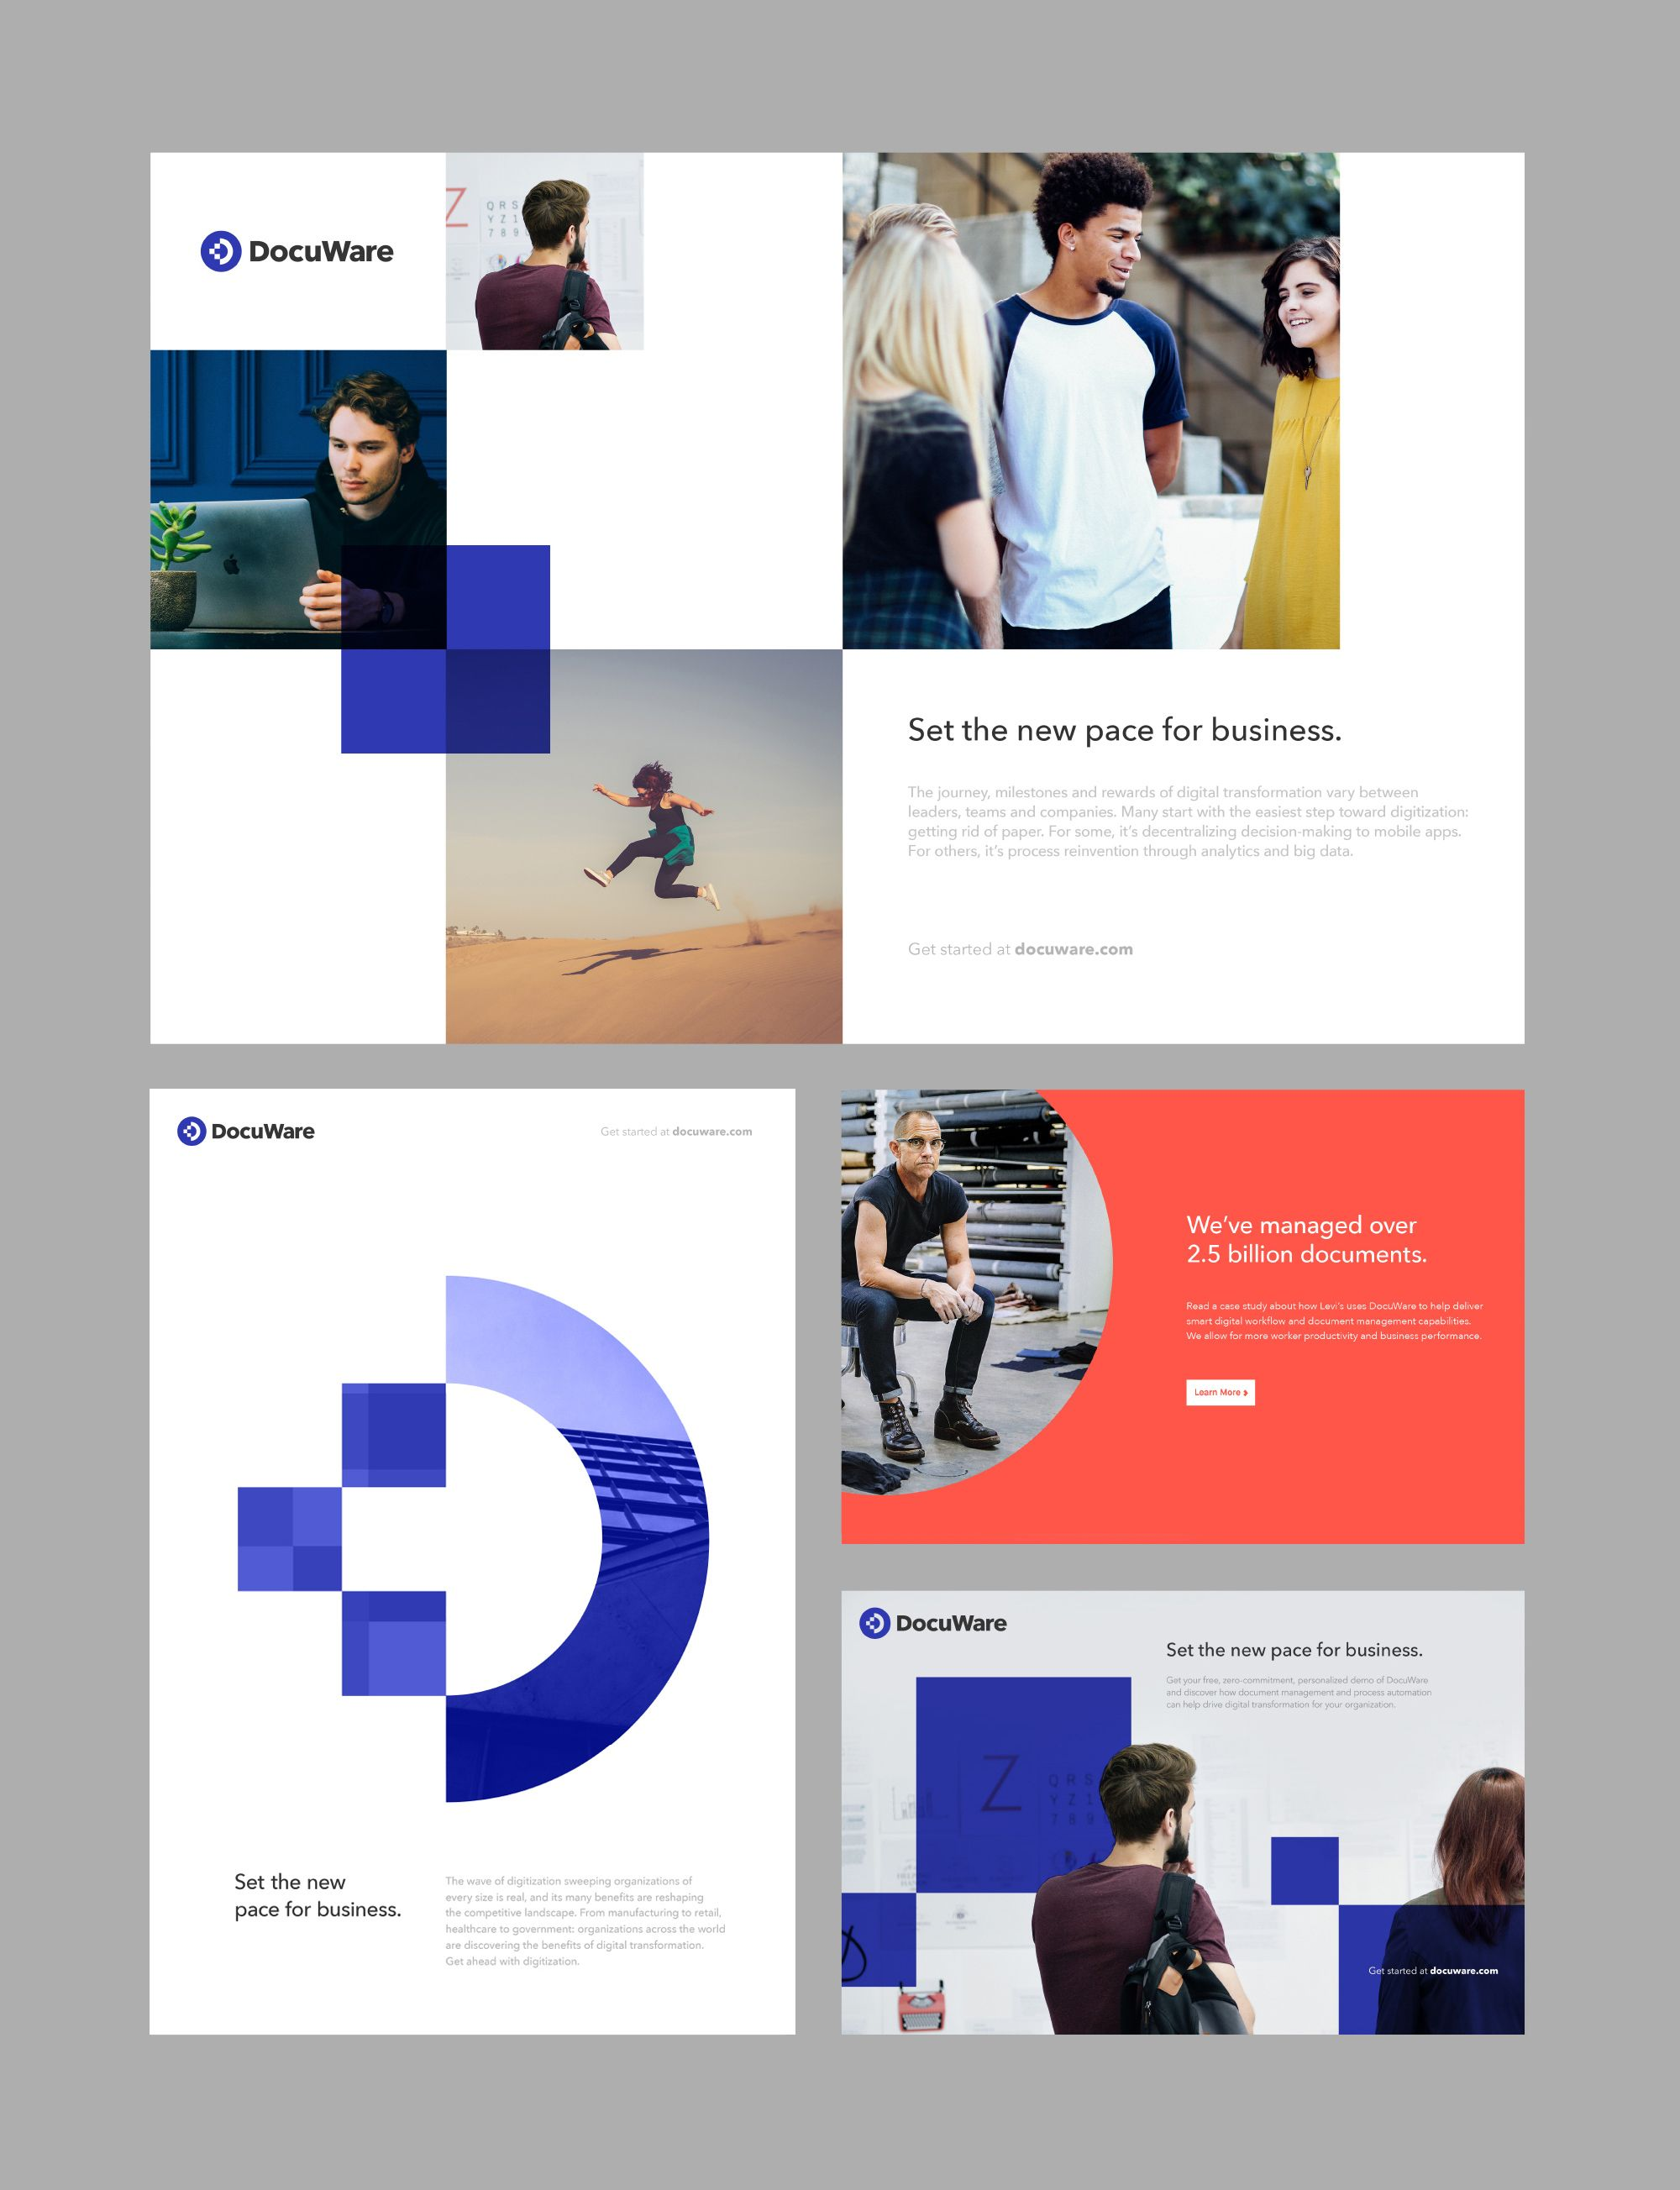 Docuware Less More A San Diego Design And Branding Agency In 2020 Identity Design Logo Branding Agency Corporate Design